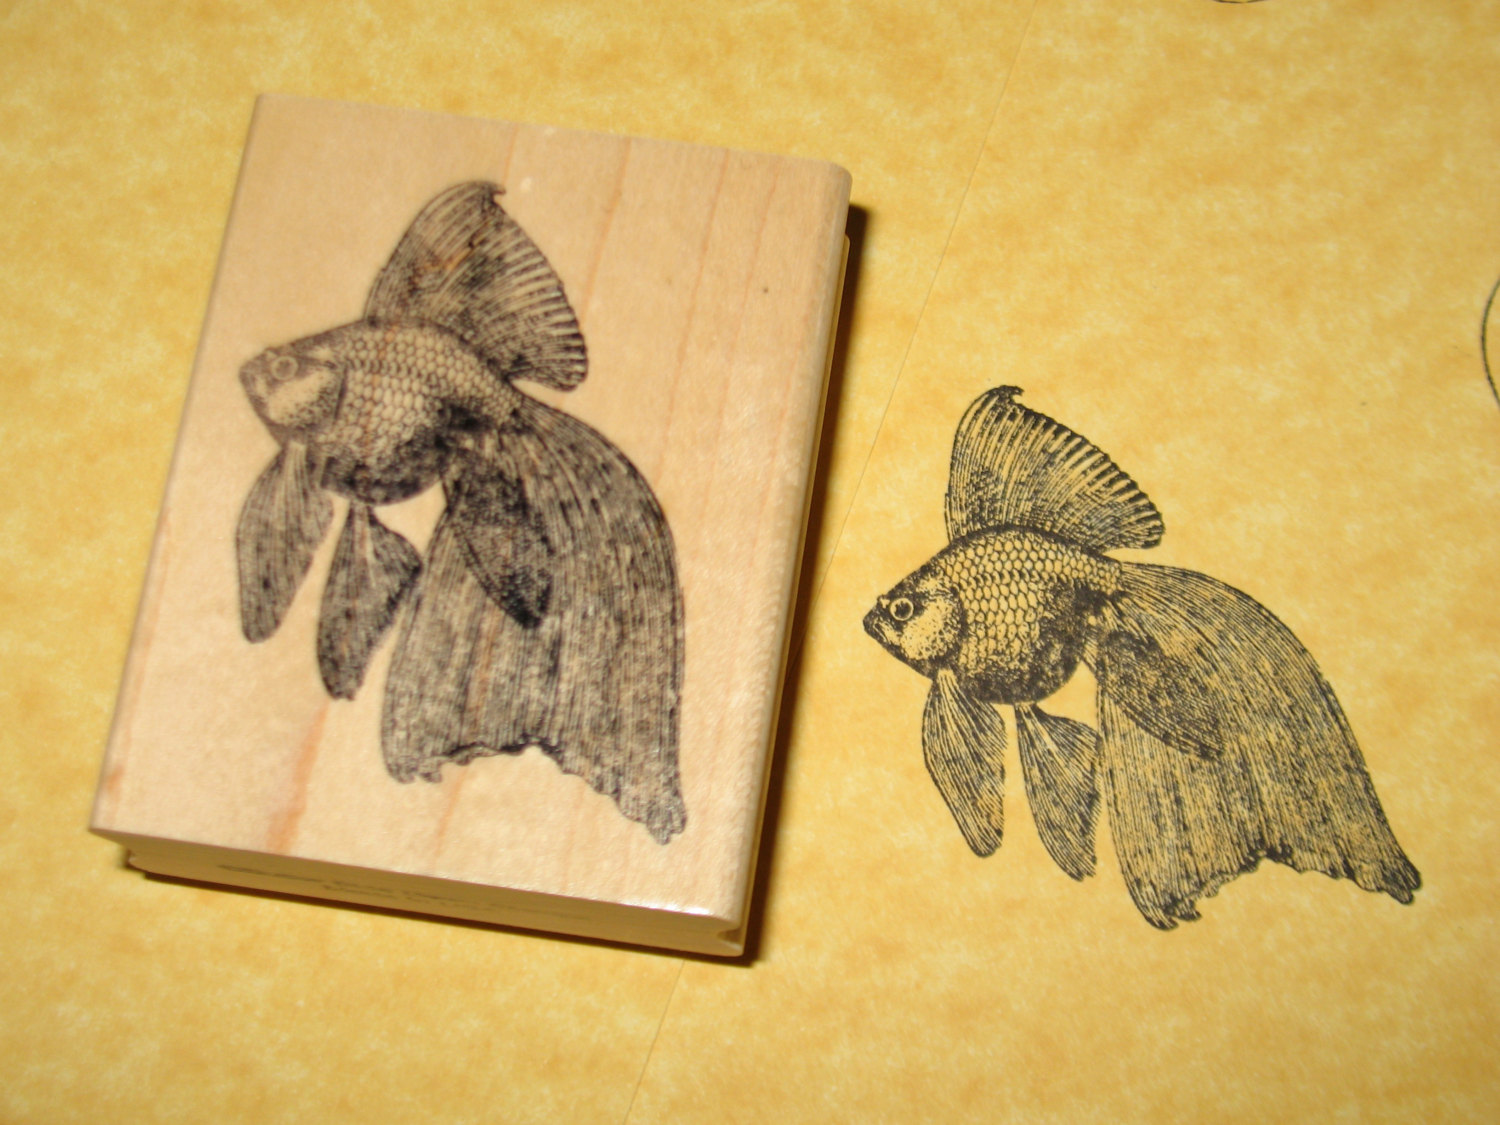 Drawn goldfish rubber Estimate Fantail Shipping from ButterSideDownStamps